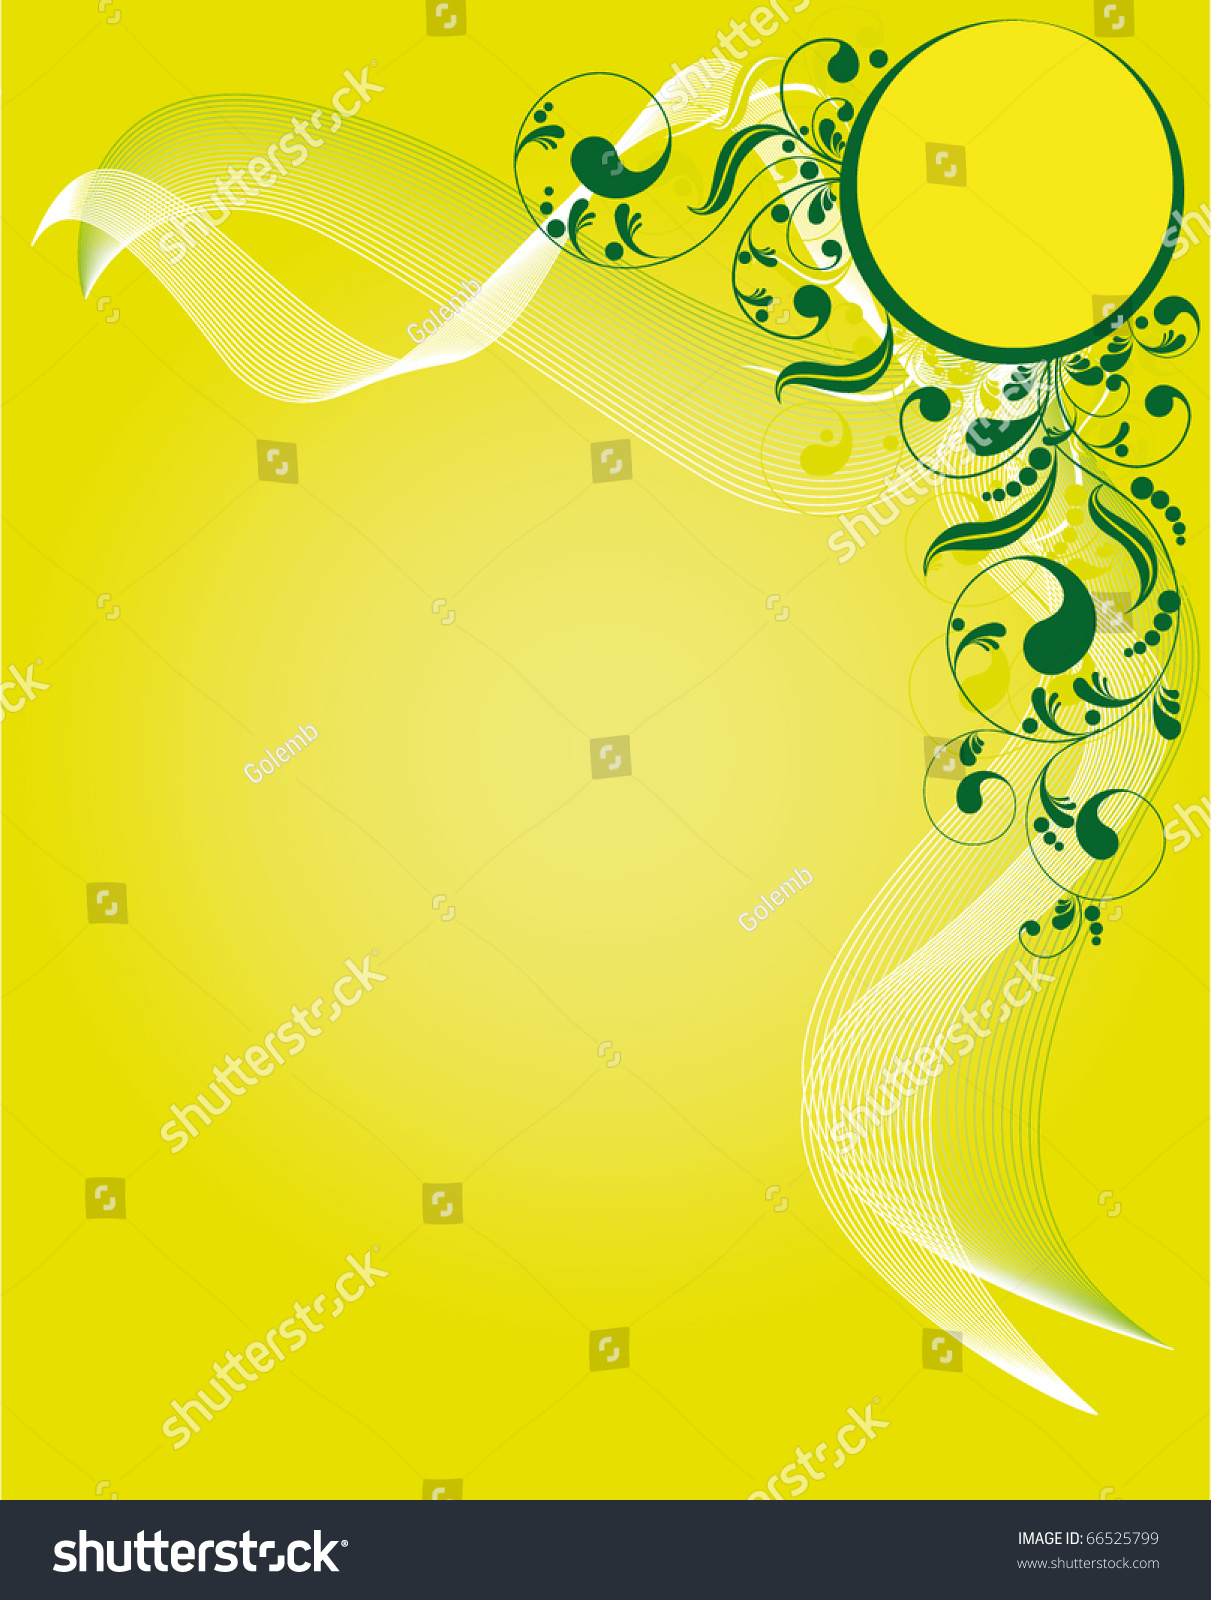 background backgrounds abstract advertisements - photo #12